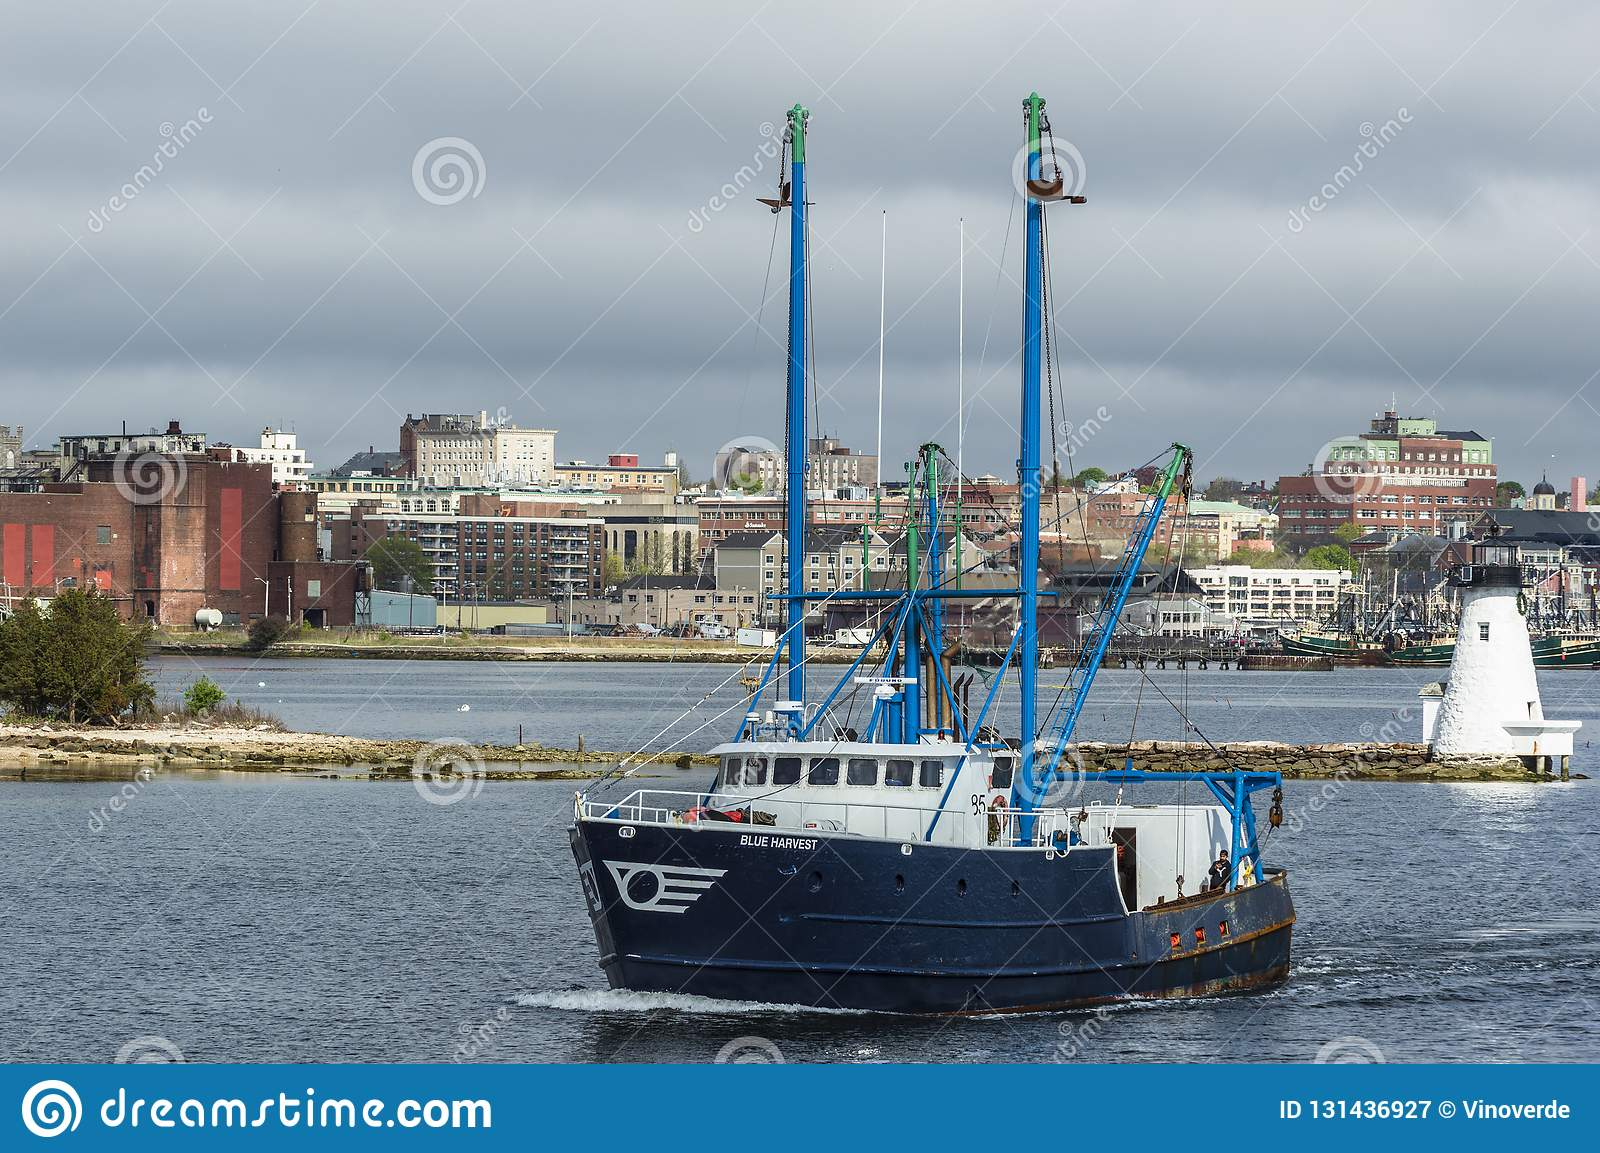 New Bedford, Massachusetts, USA - May 10, 2018: Commercial